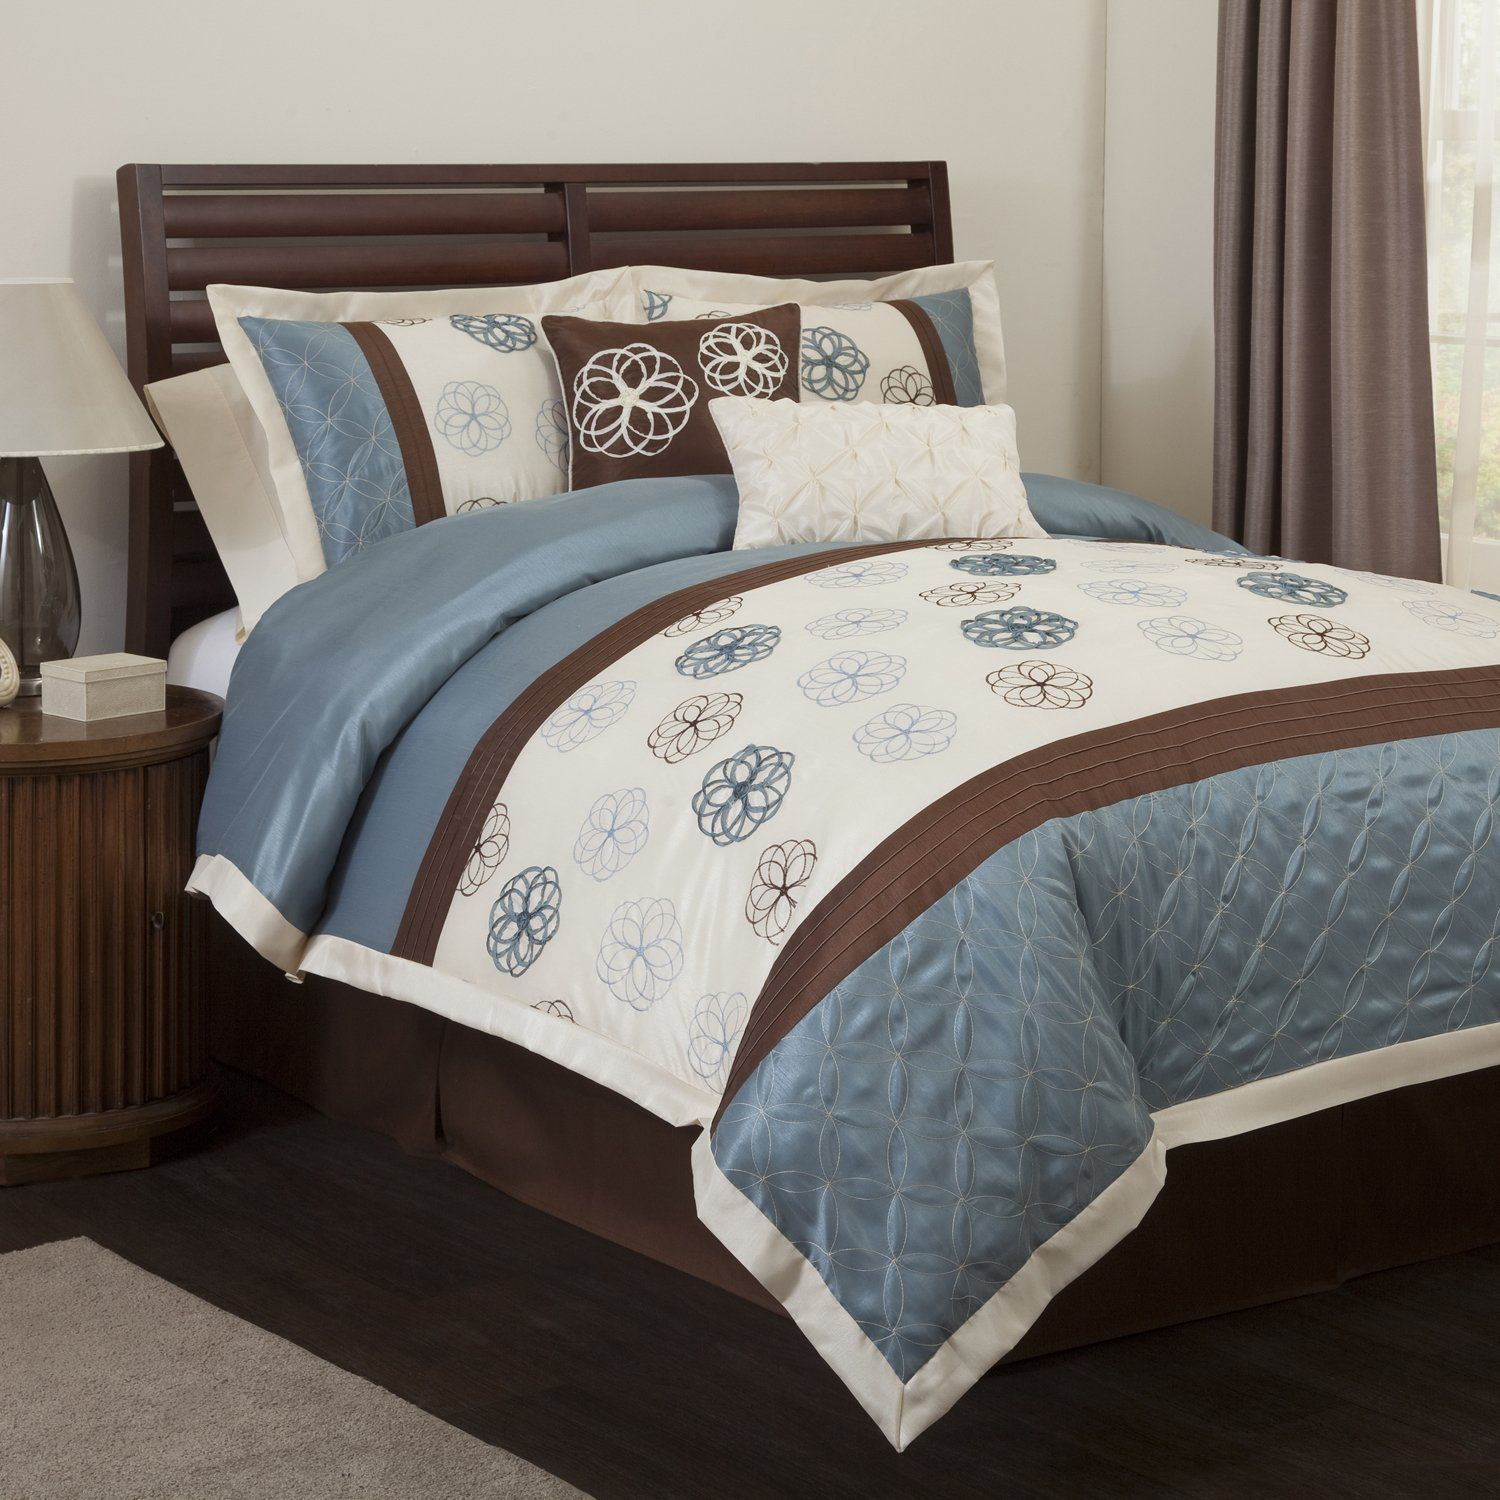 Triangle Home Fashions Lush Decor 6 Piece Covi forter Set Blue